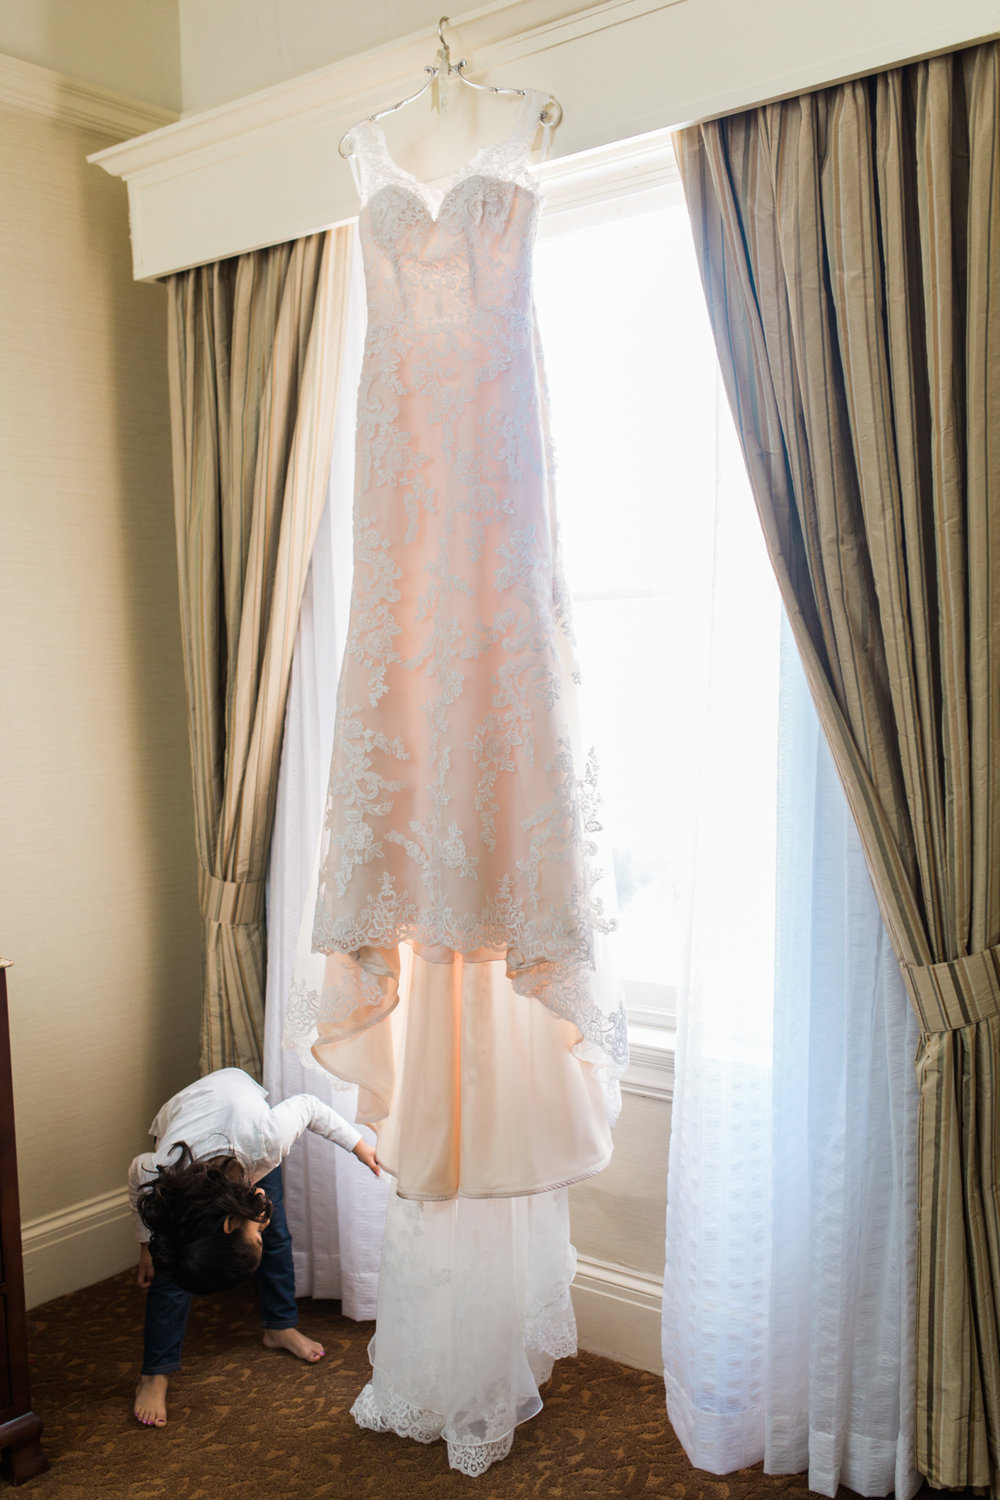 Little girl peeking at wedding dress in front of hotel window